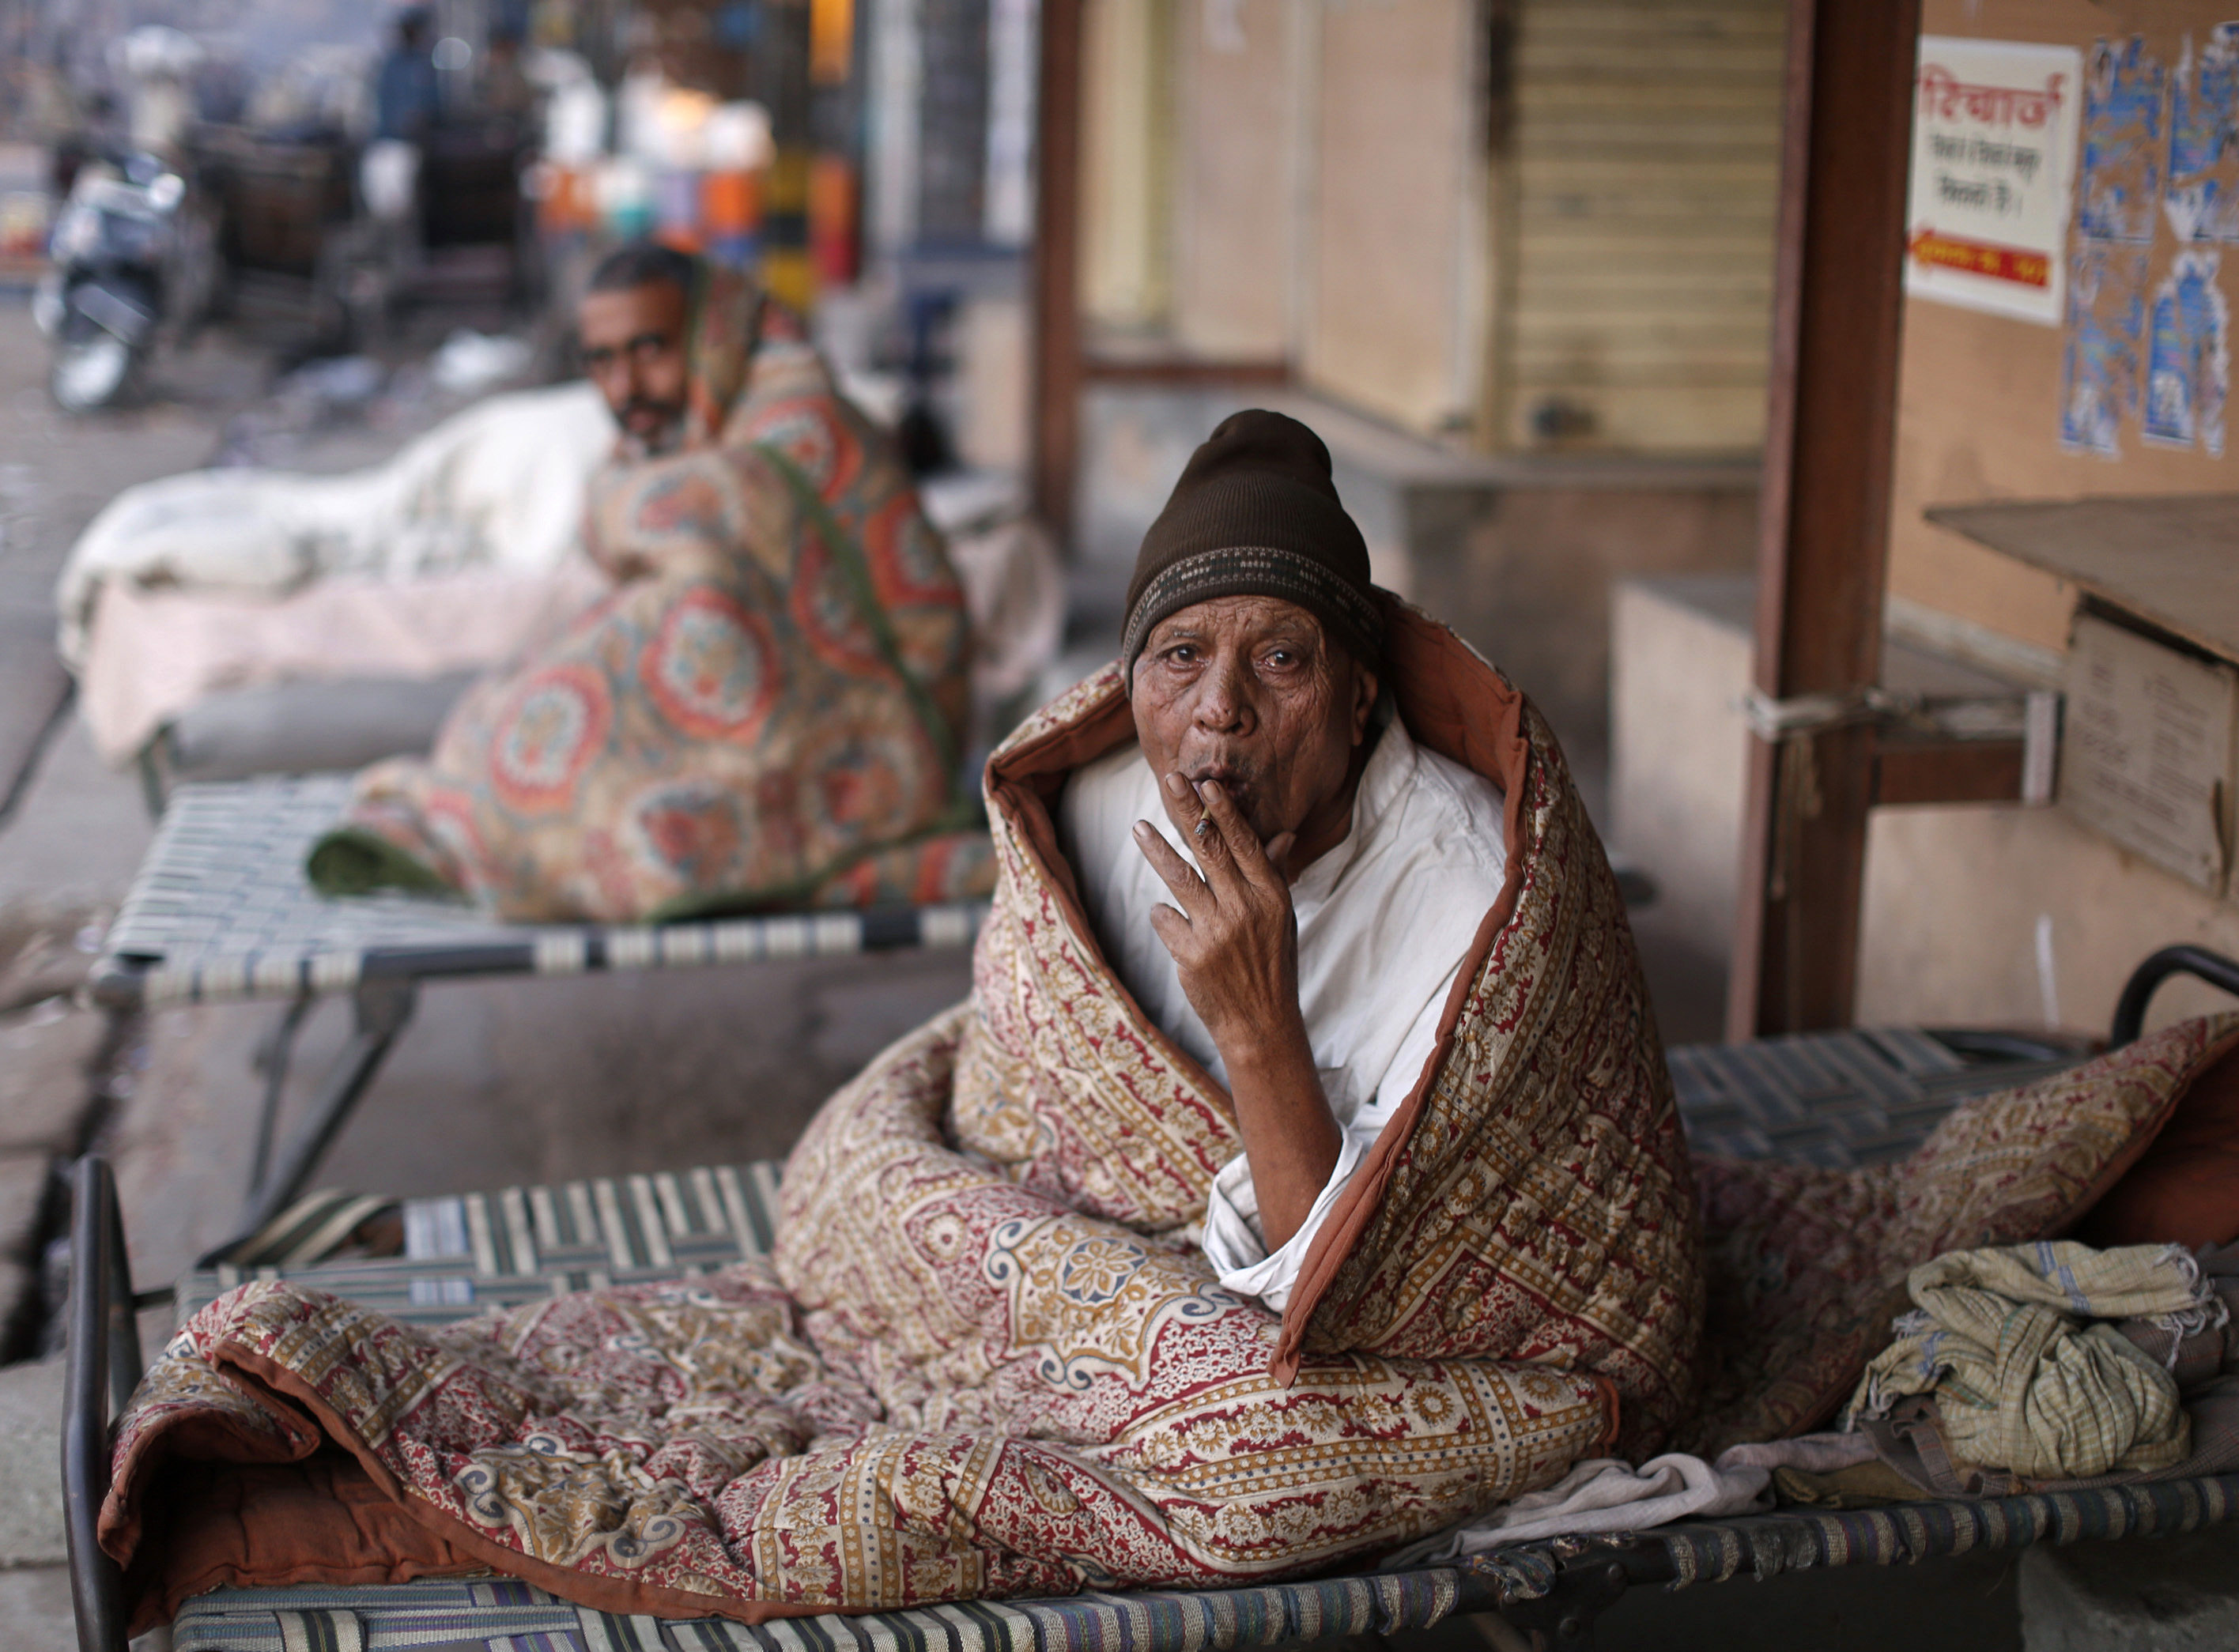 A homeless man smokes as he is wrapped in a quilt at a pavement early morning in the old quarters of Delhi November 27, 2013. REUTERS/Ahmad Masood (INDIA - Tags: SOCIETY) - RTX15UKC